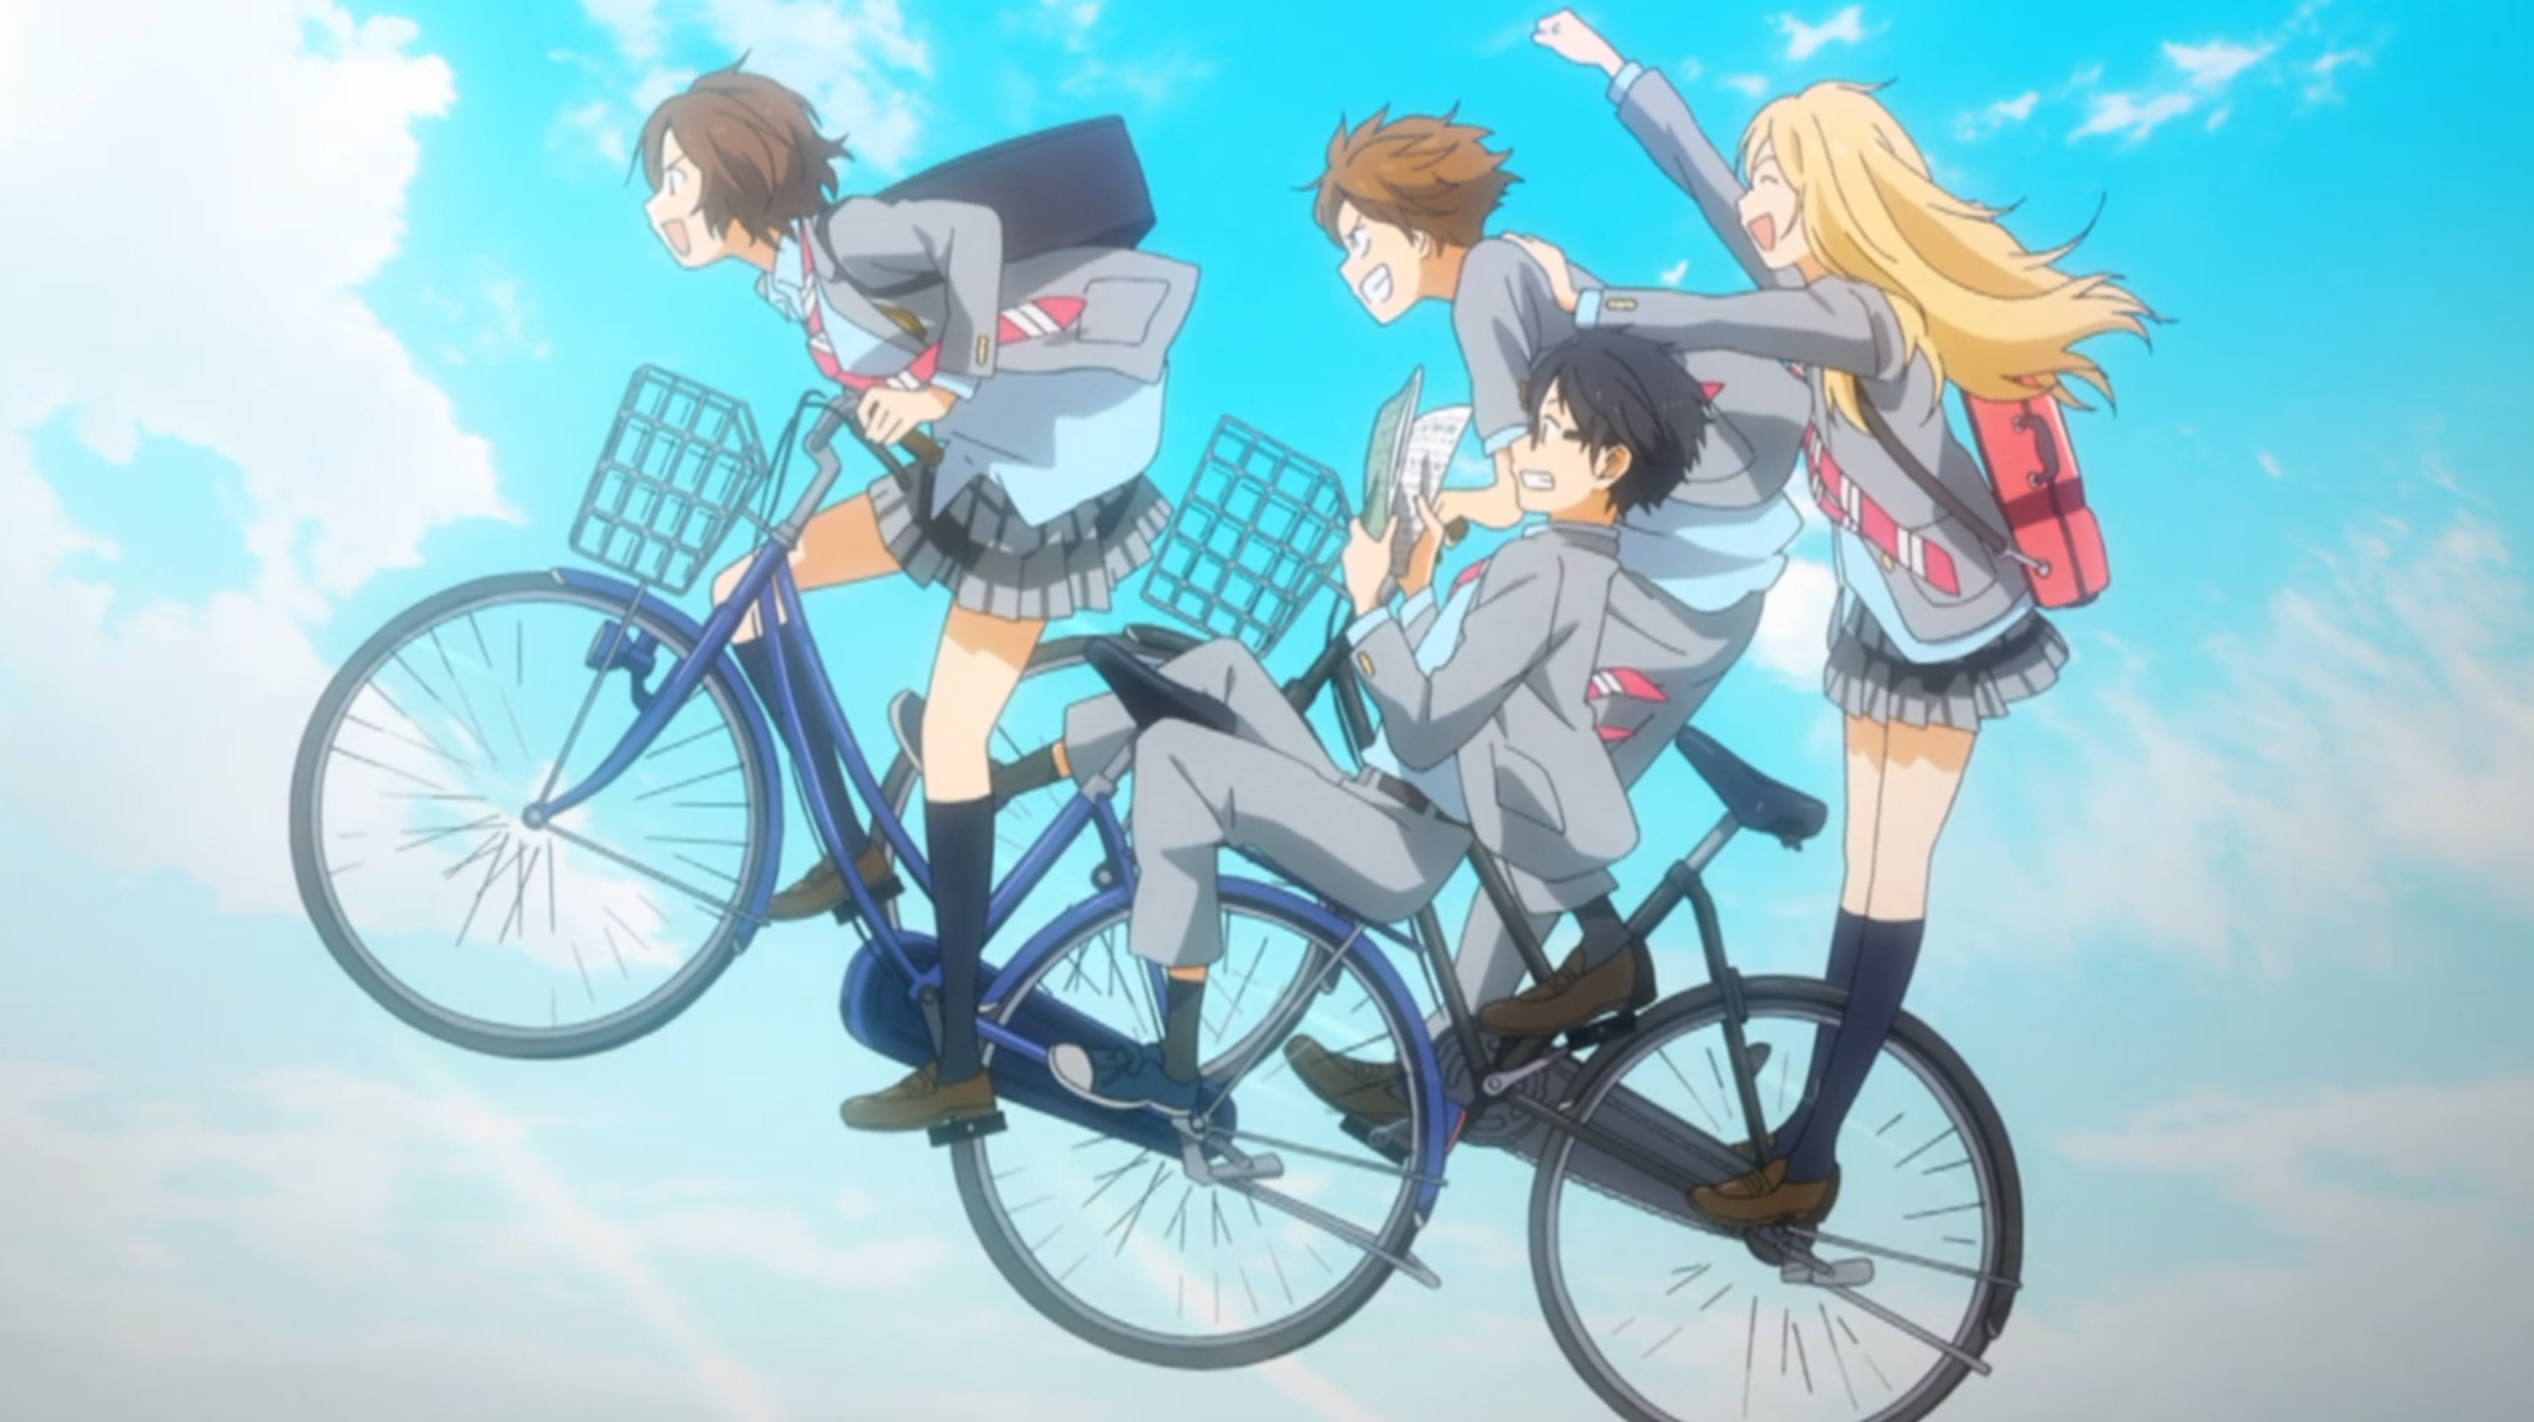 one of the best anime scenes i've seen! Your lie in